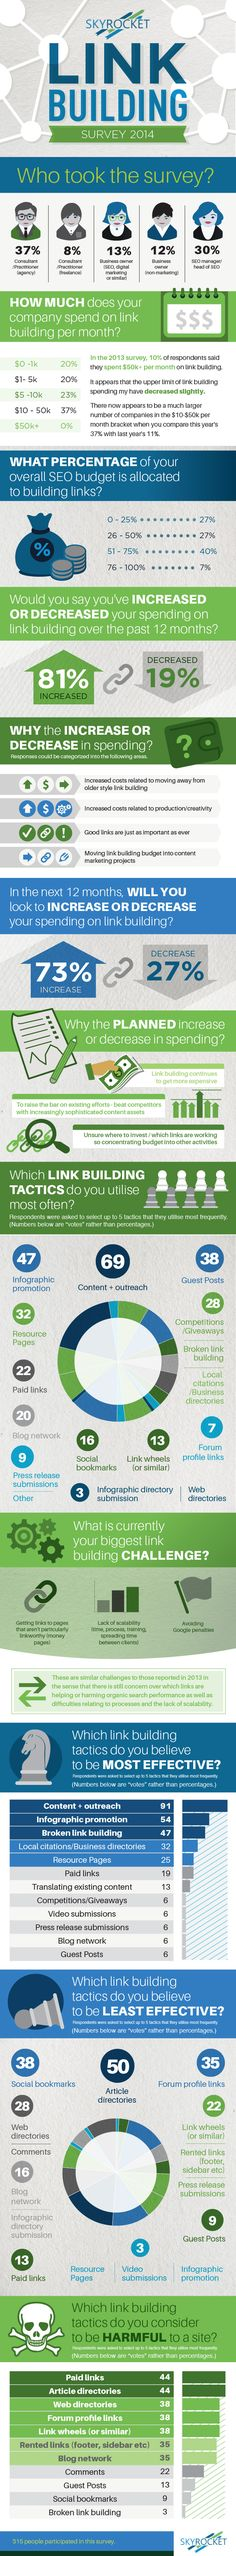 The New Link Building Survey 2014 - Results - Moz